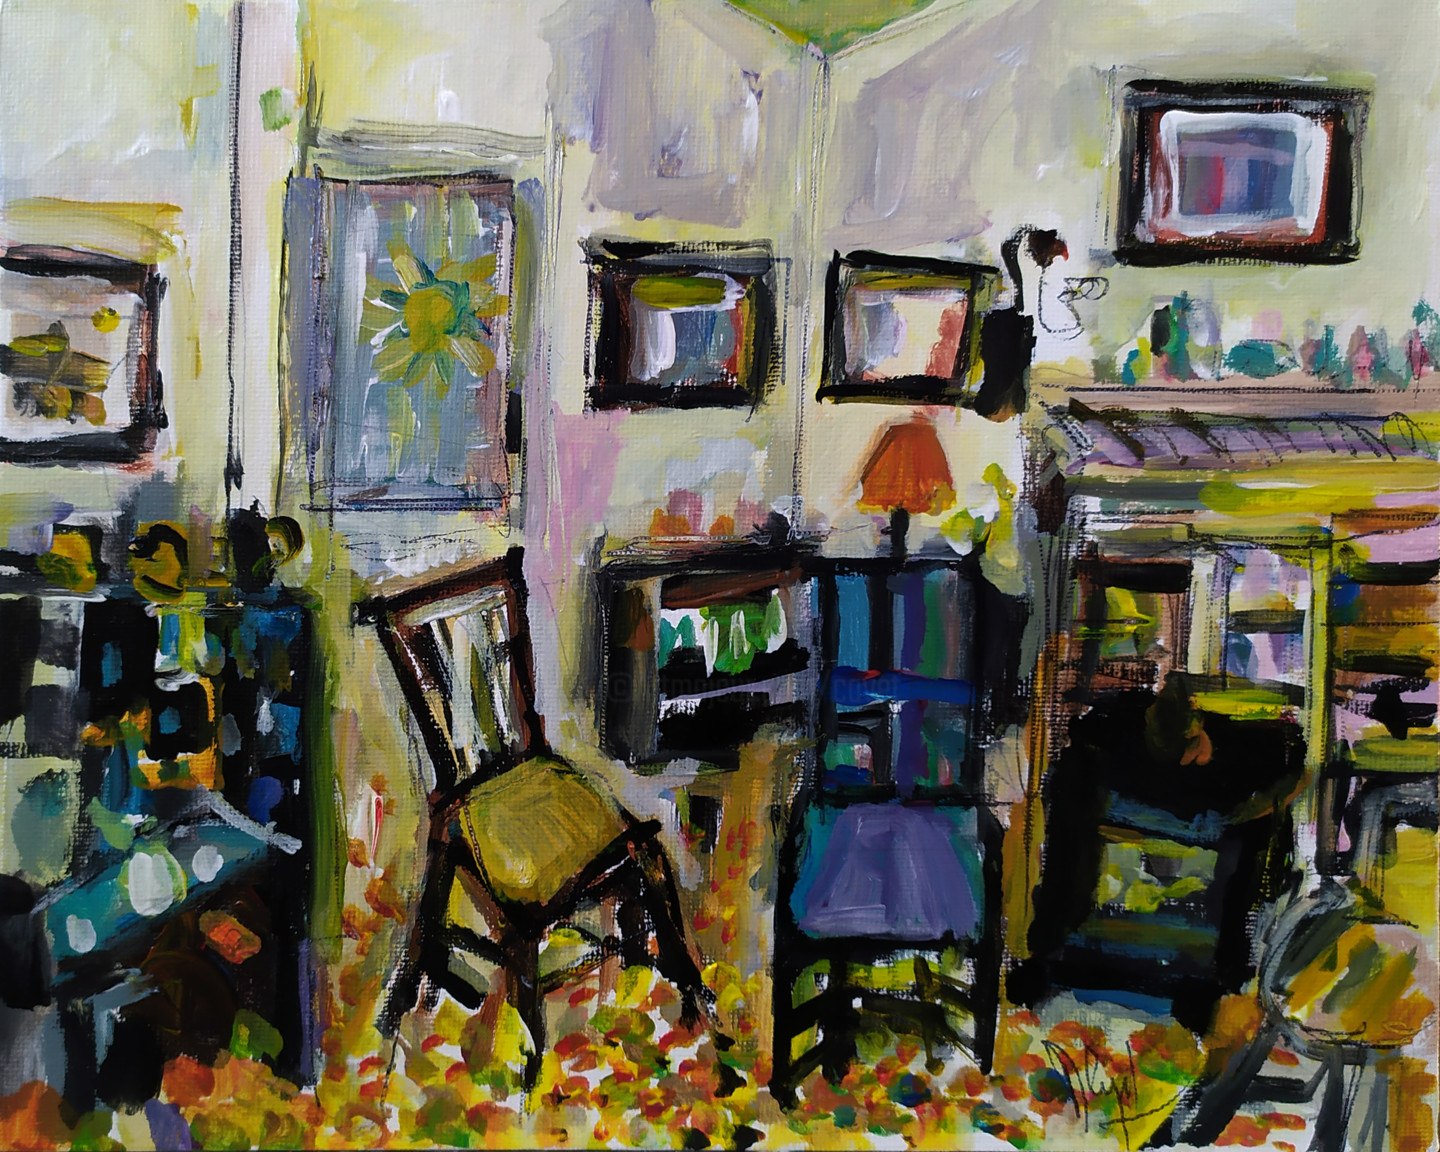 Muriel Cayet - Marguerite Y. at home